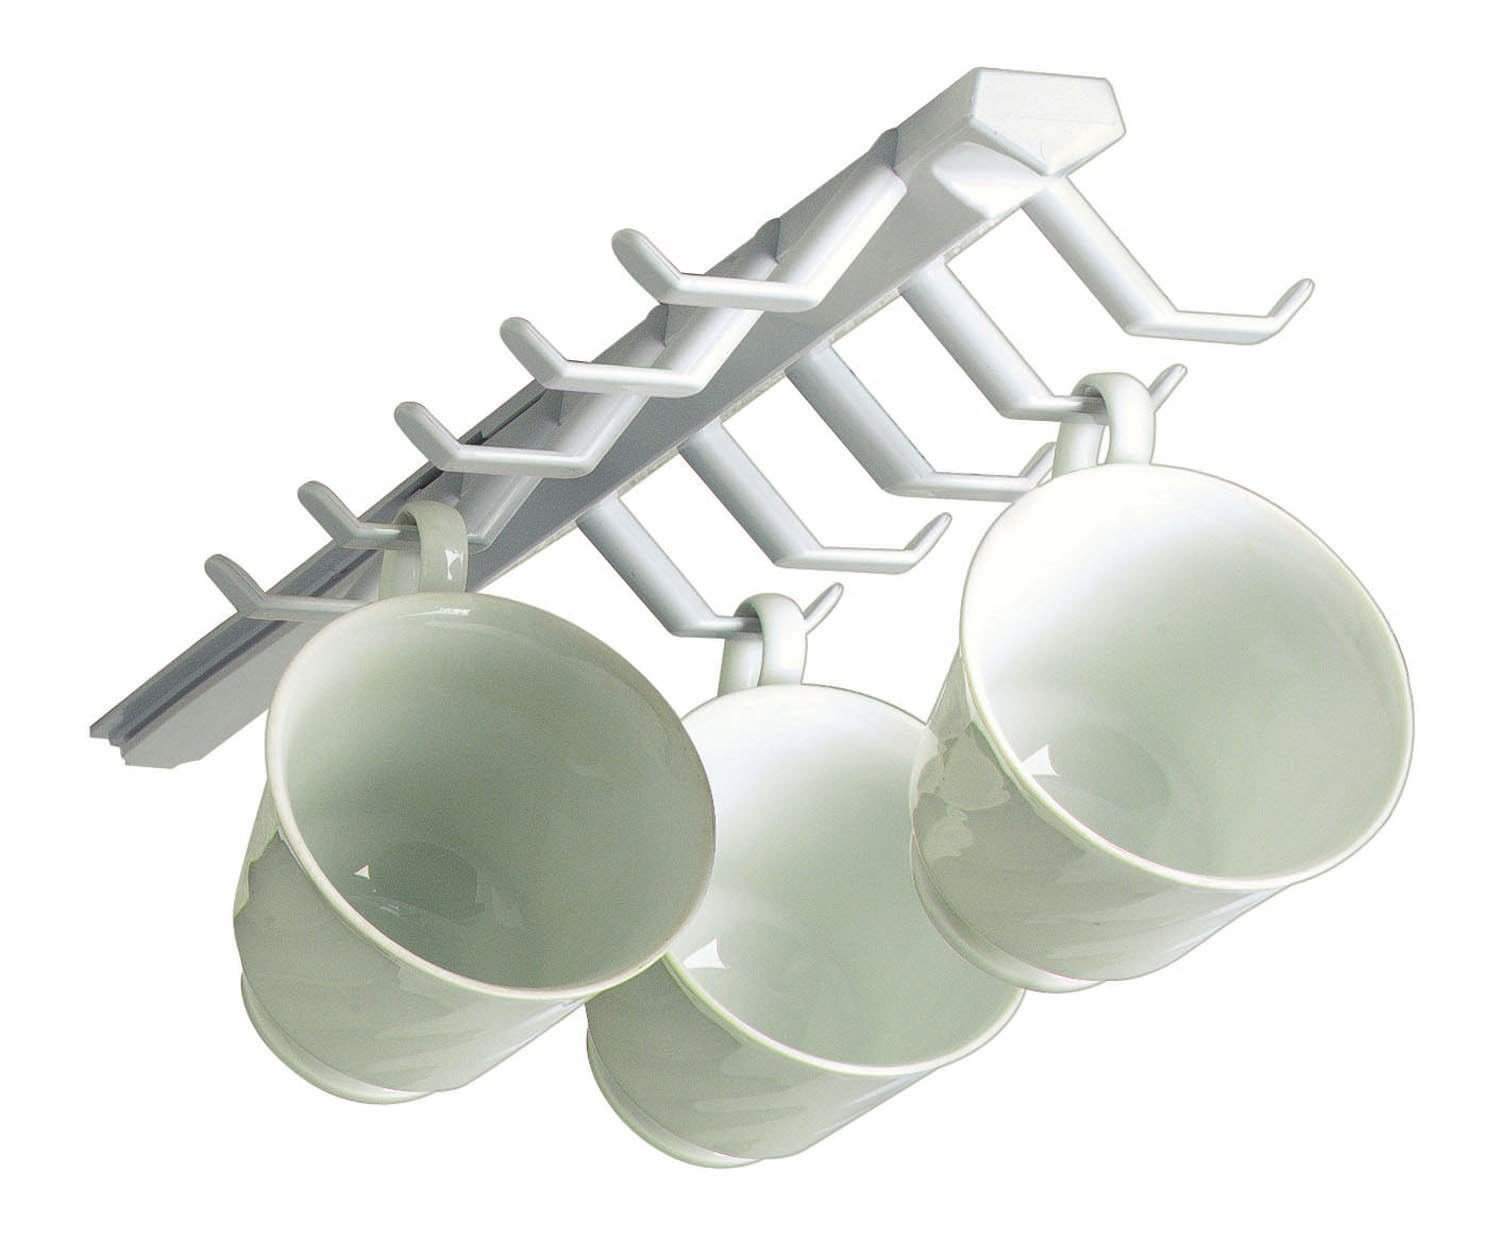 Spectrum Diversified 34100 White Sliding Cup Rack (Pack of 2) Spectrum Diversified Designs 34100-2